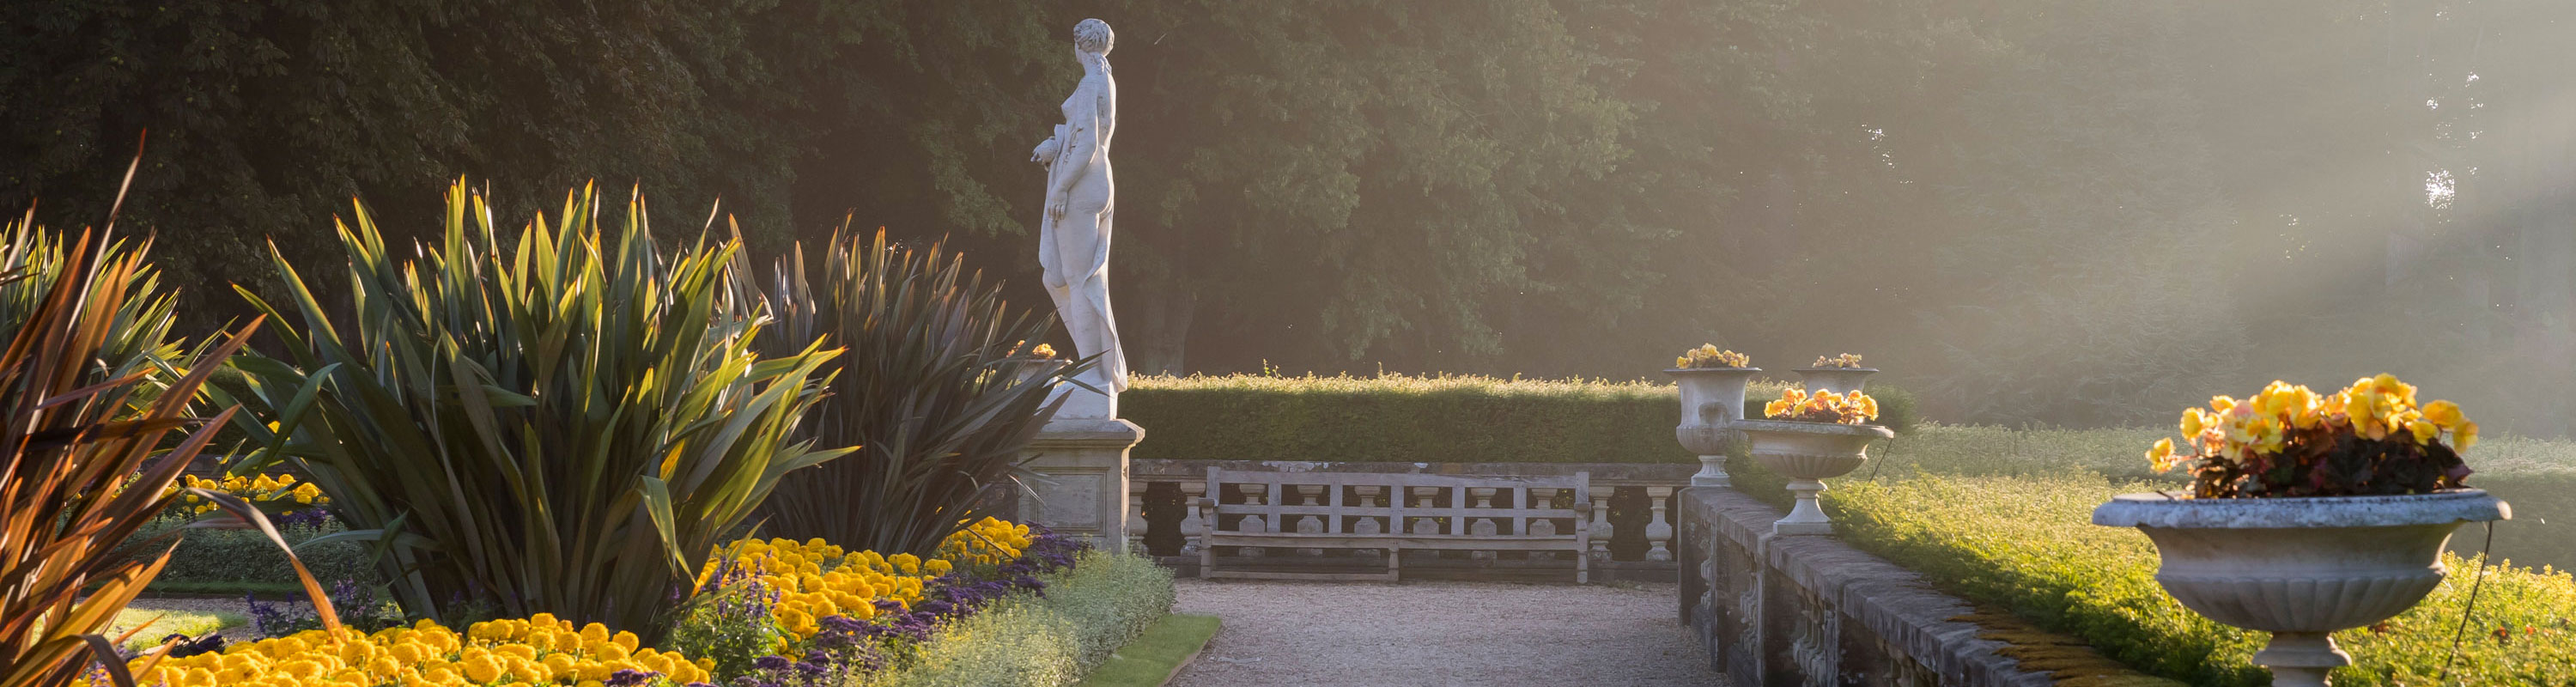 Parterre walkway at sunrise